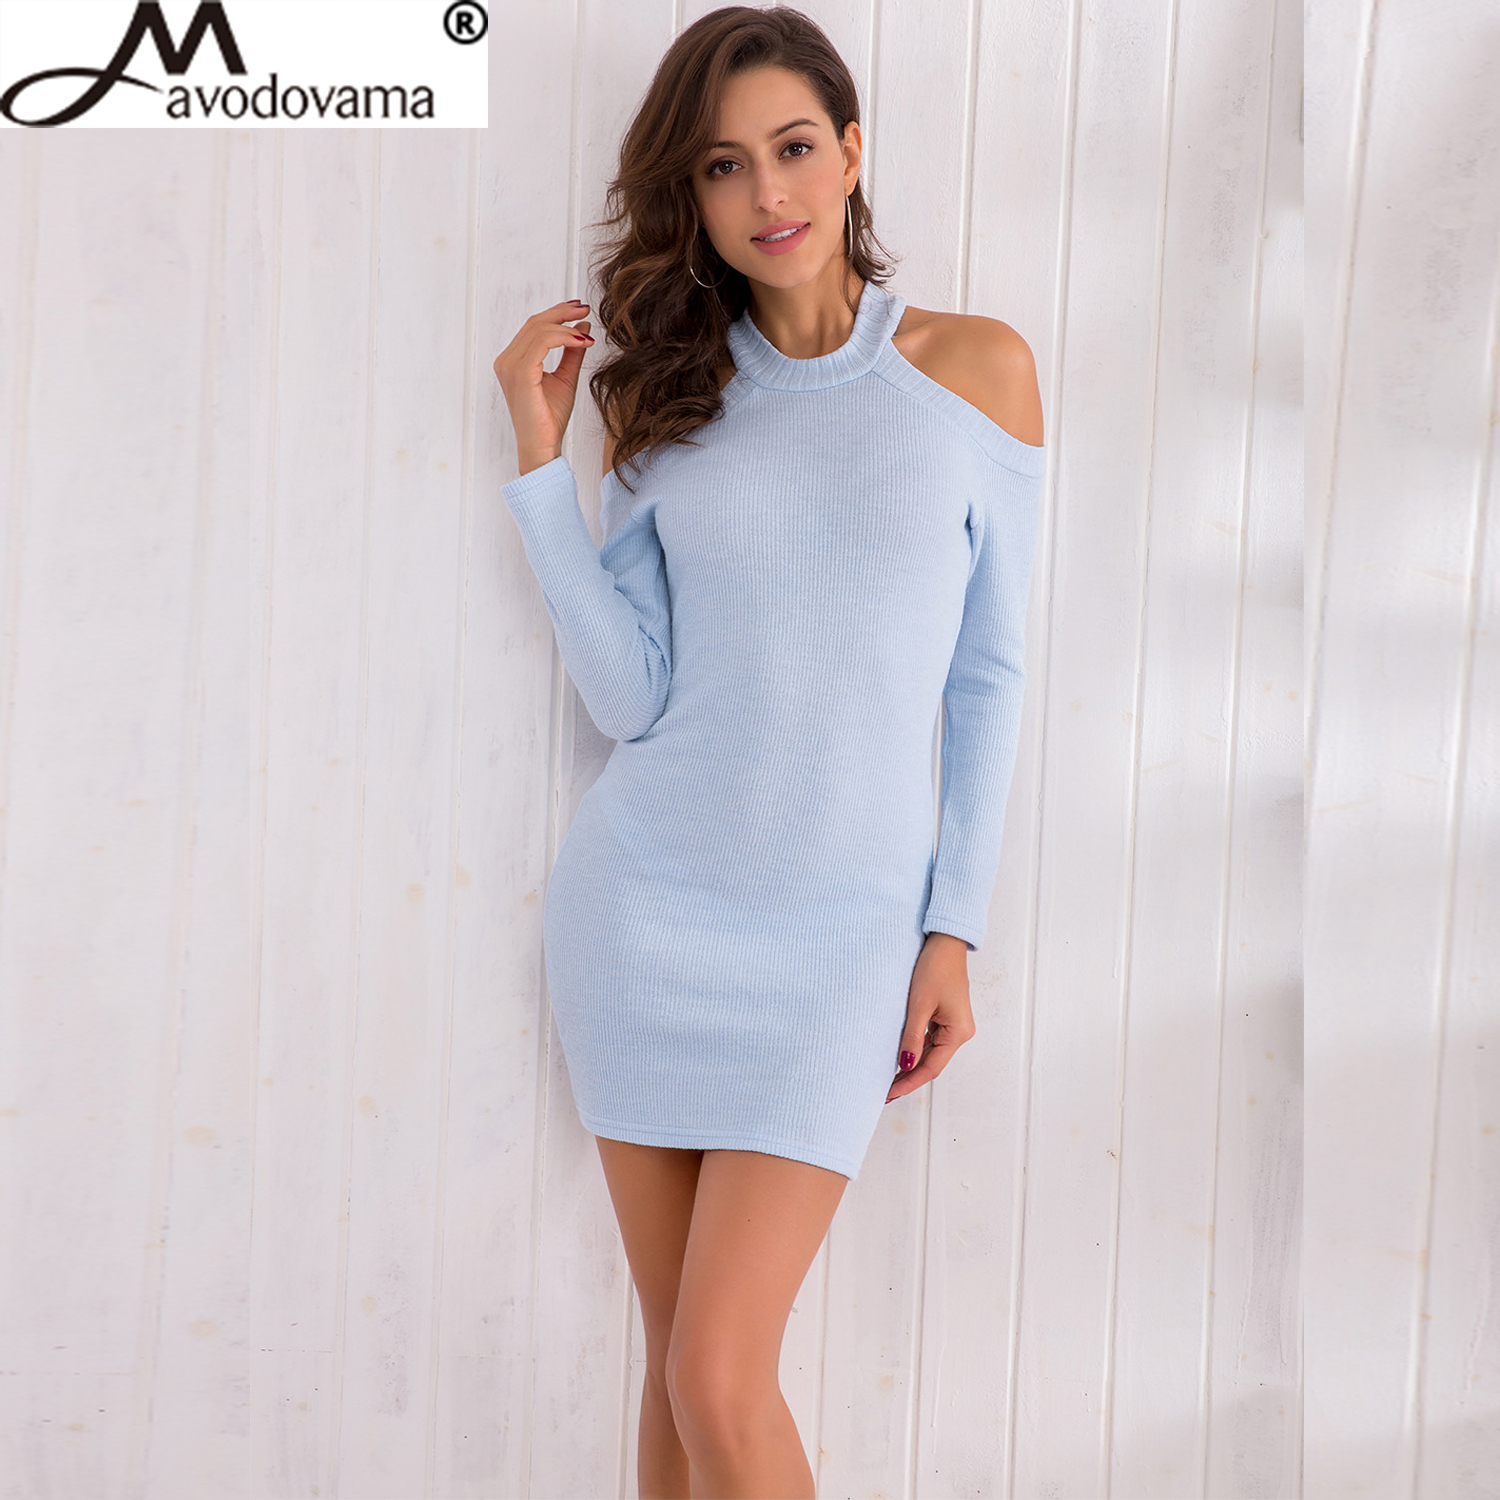 Avodovama M Sexy Halter Off Shoulder Knitted Women Spring Long Sleeve Elegant Party Dress Casual Slim Bodycon Mini Dresses elegant m